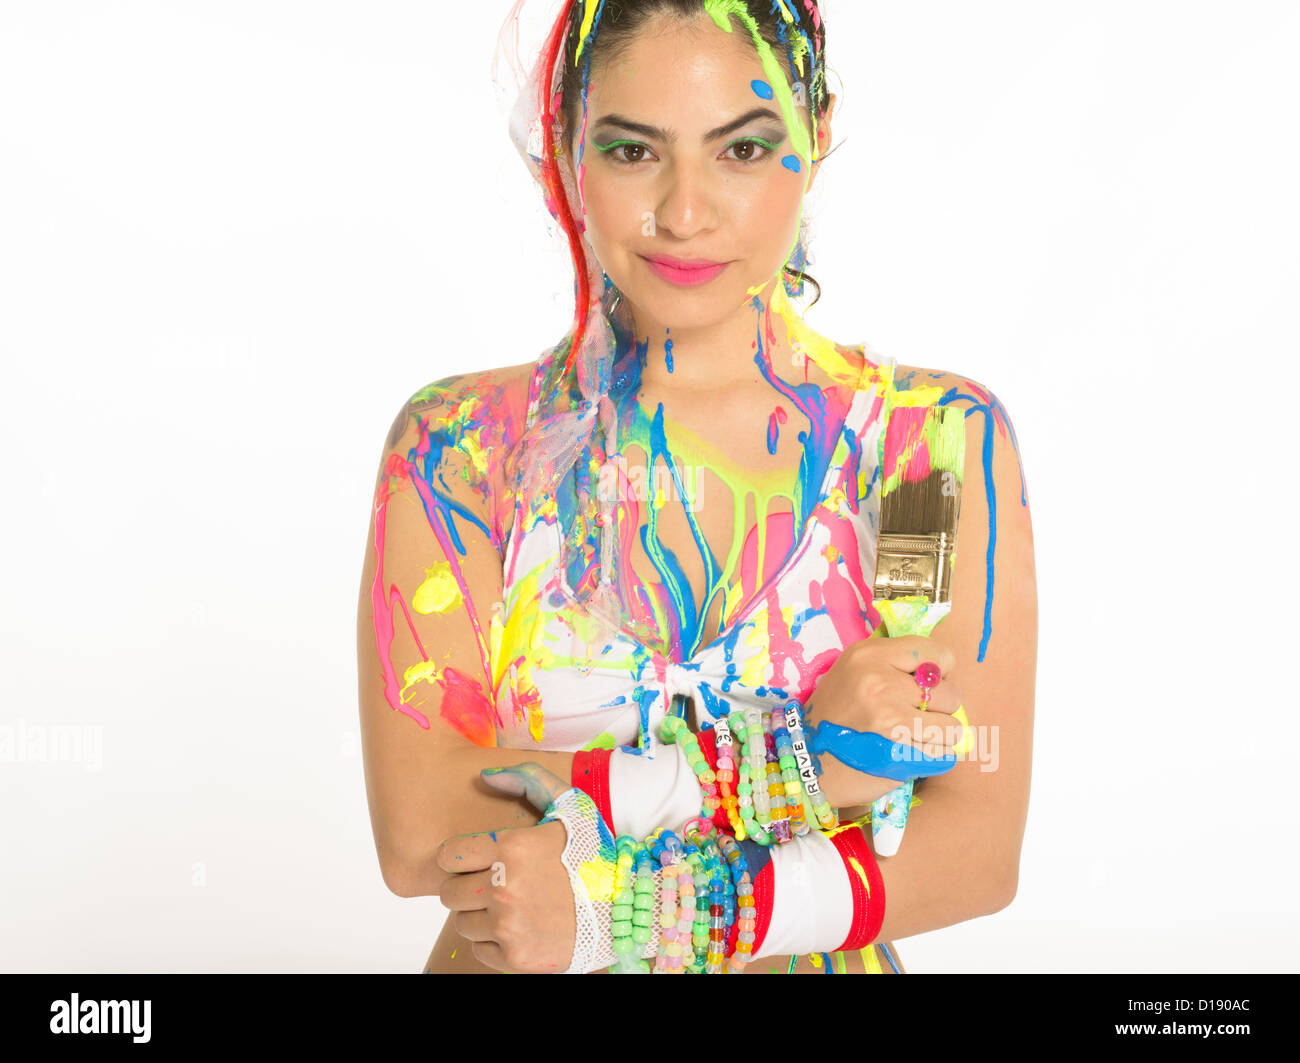 High Quality Girl With Paintbrush Covered In Paint. When DIY Goes Wrong!